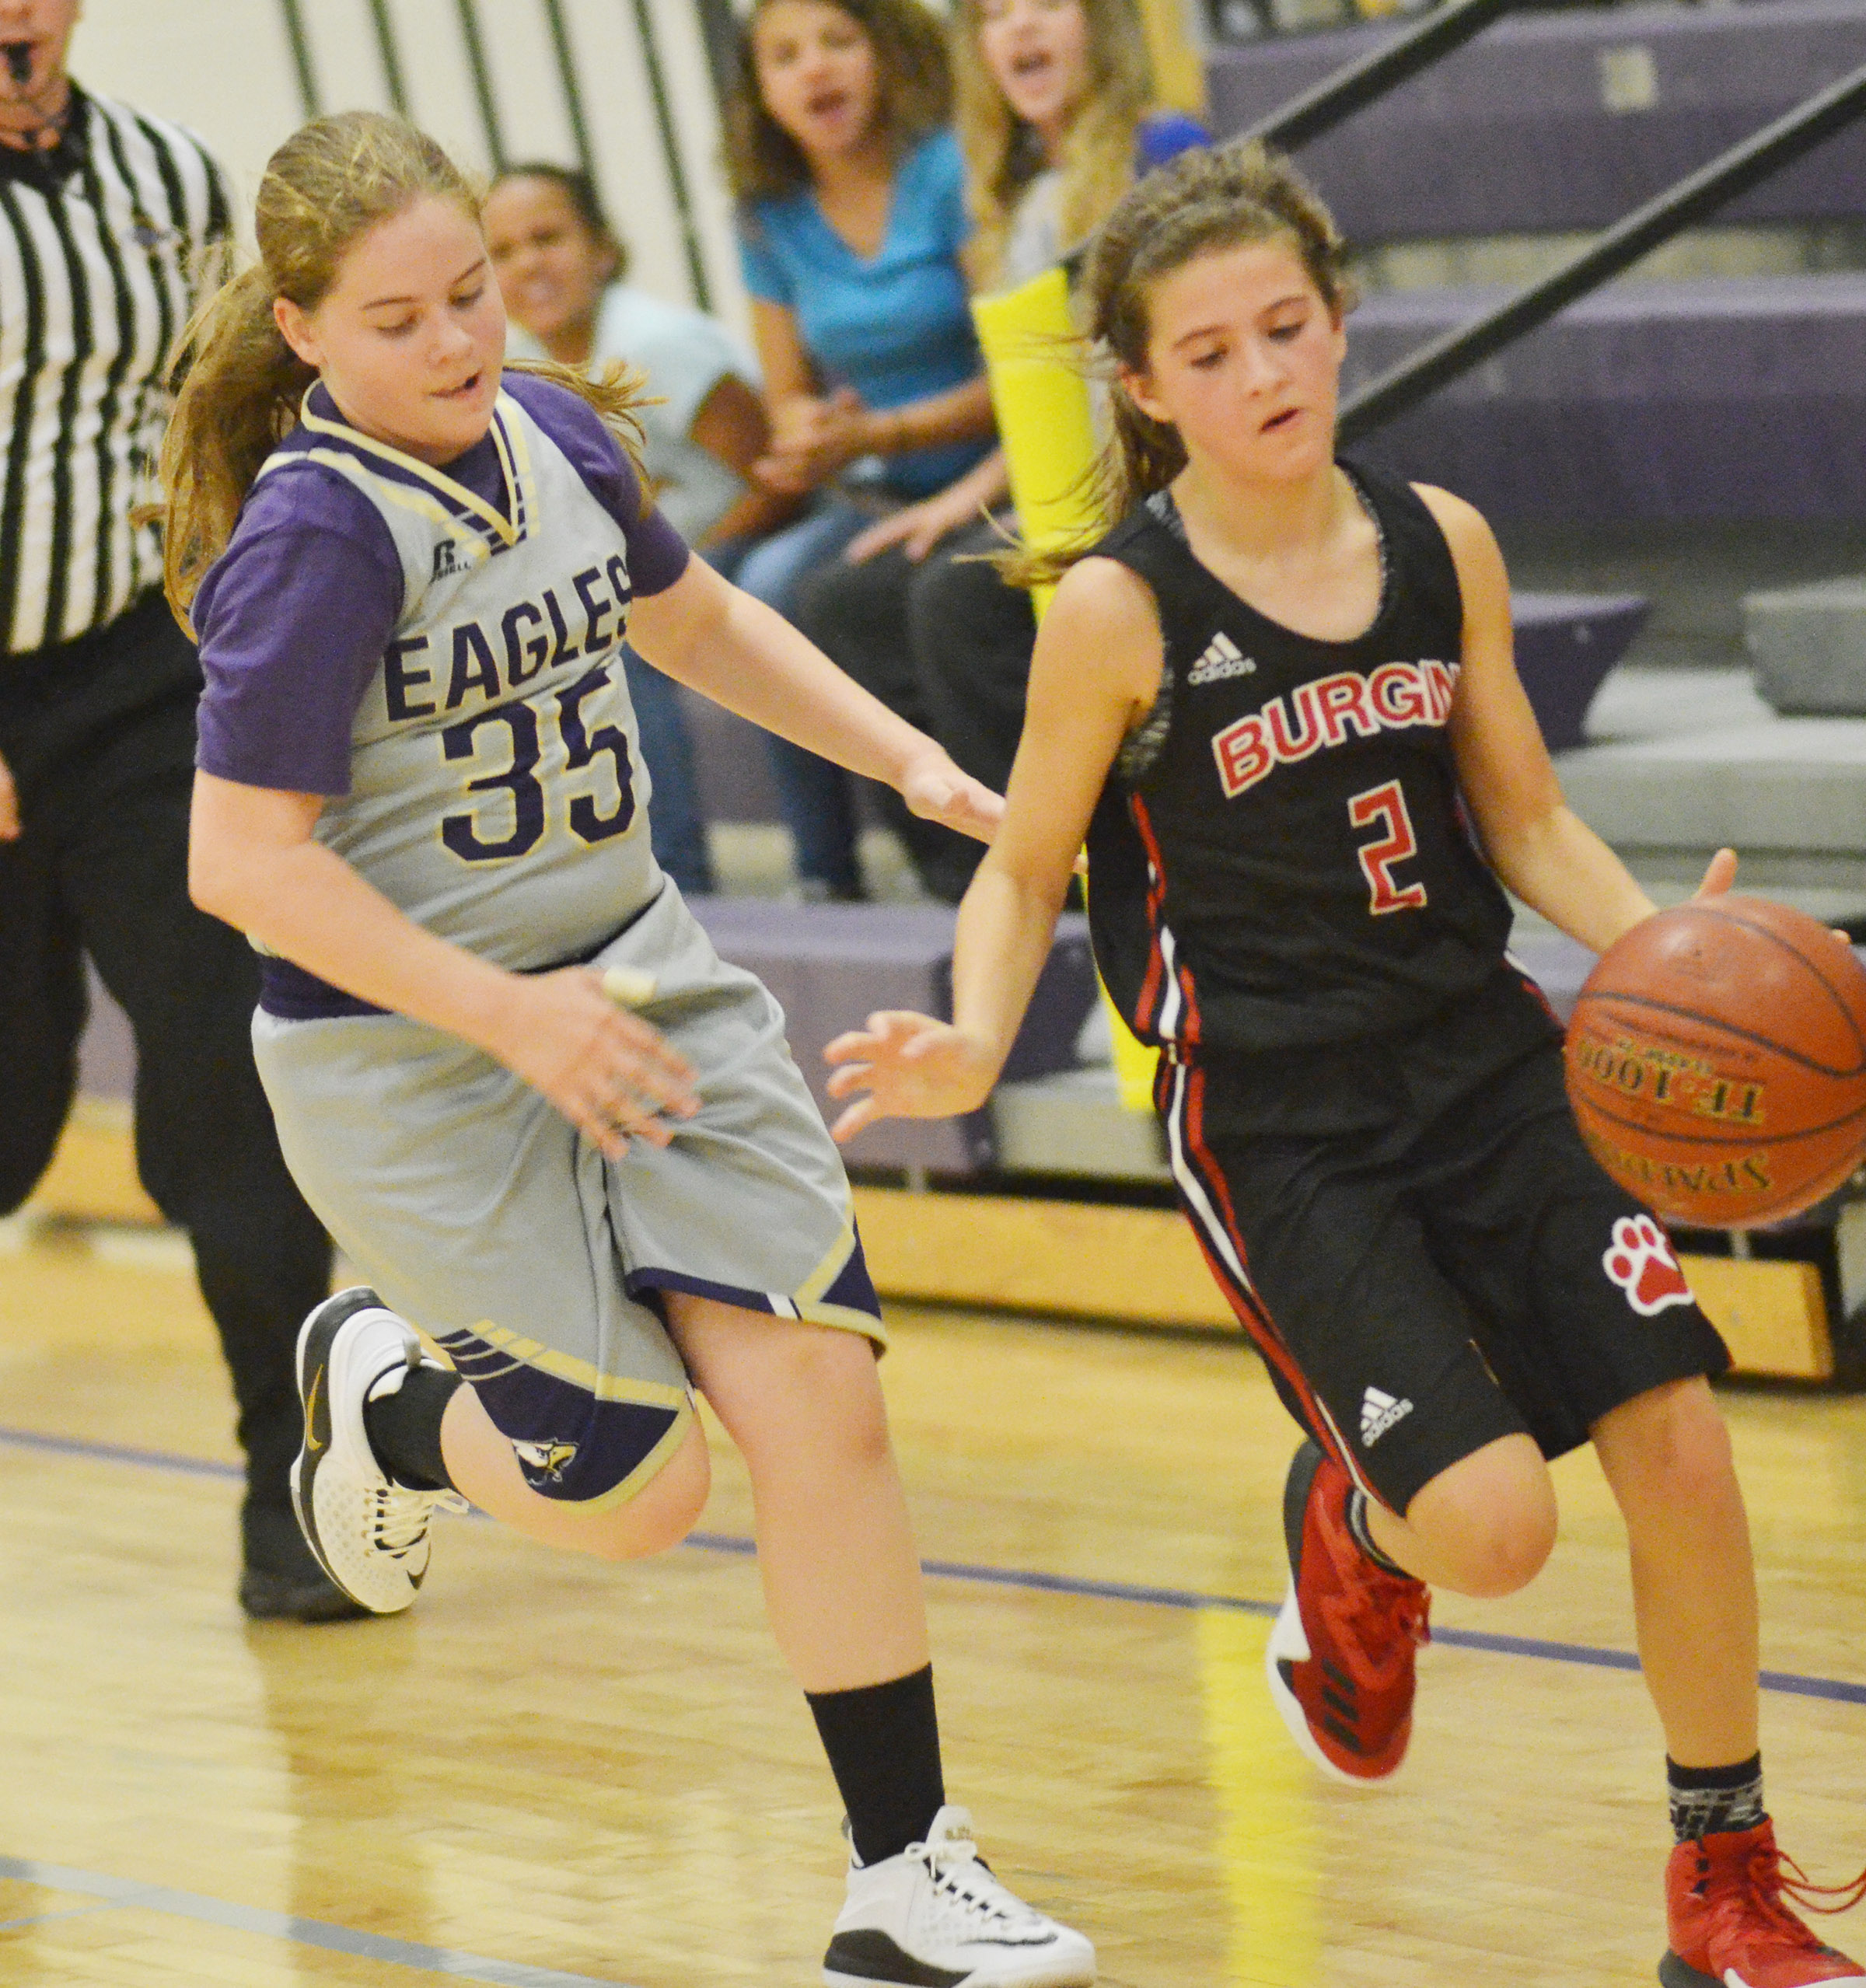 CMS sixth-grader Layla Steen runs after a Burgin player.